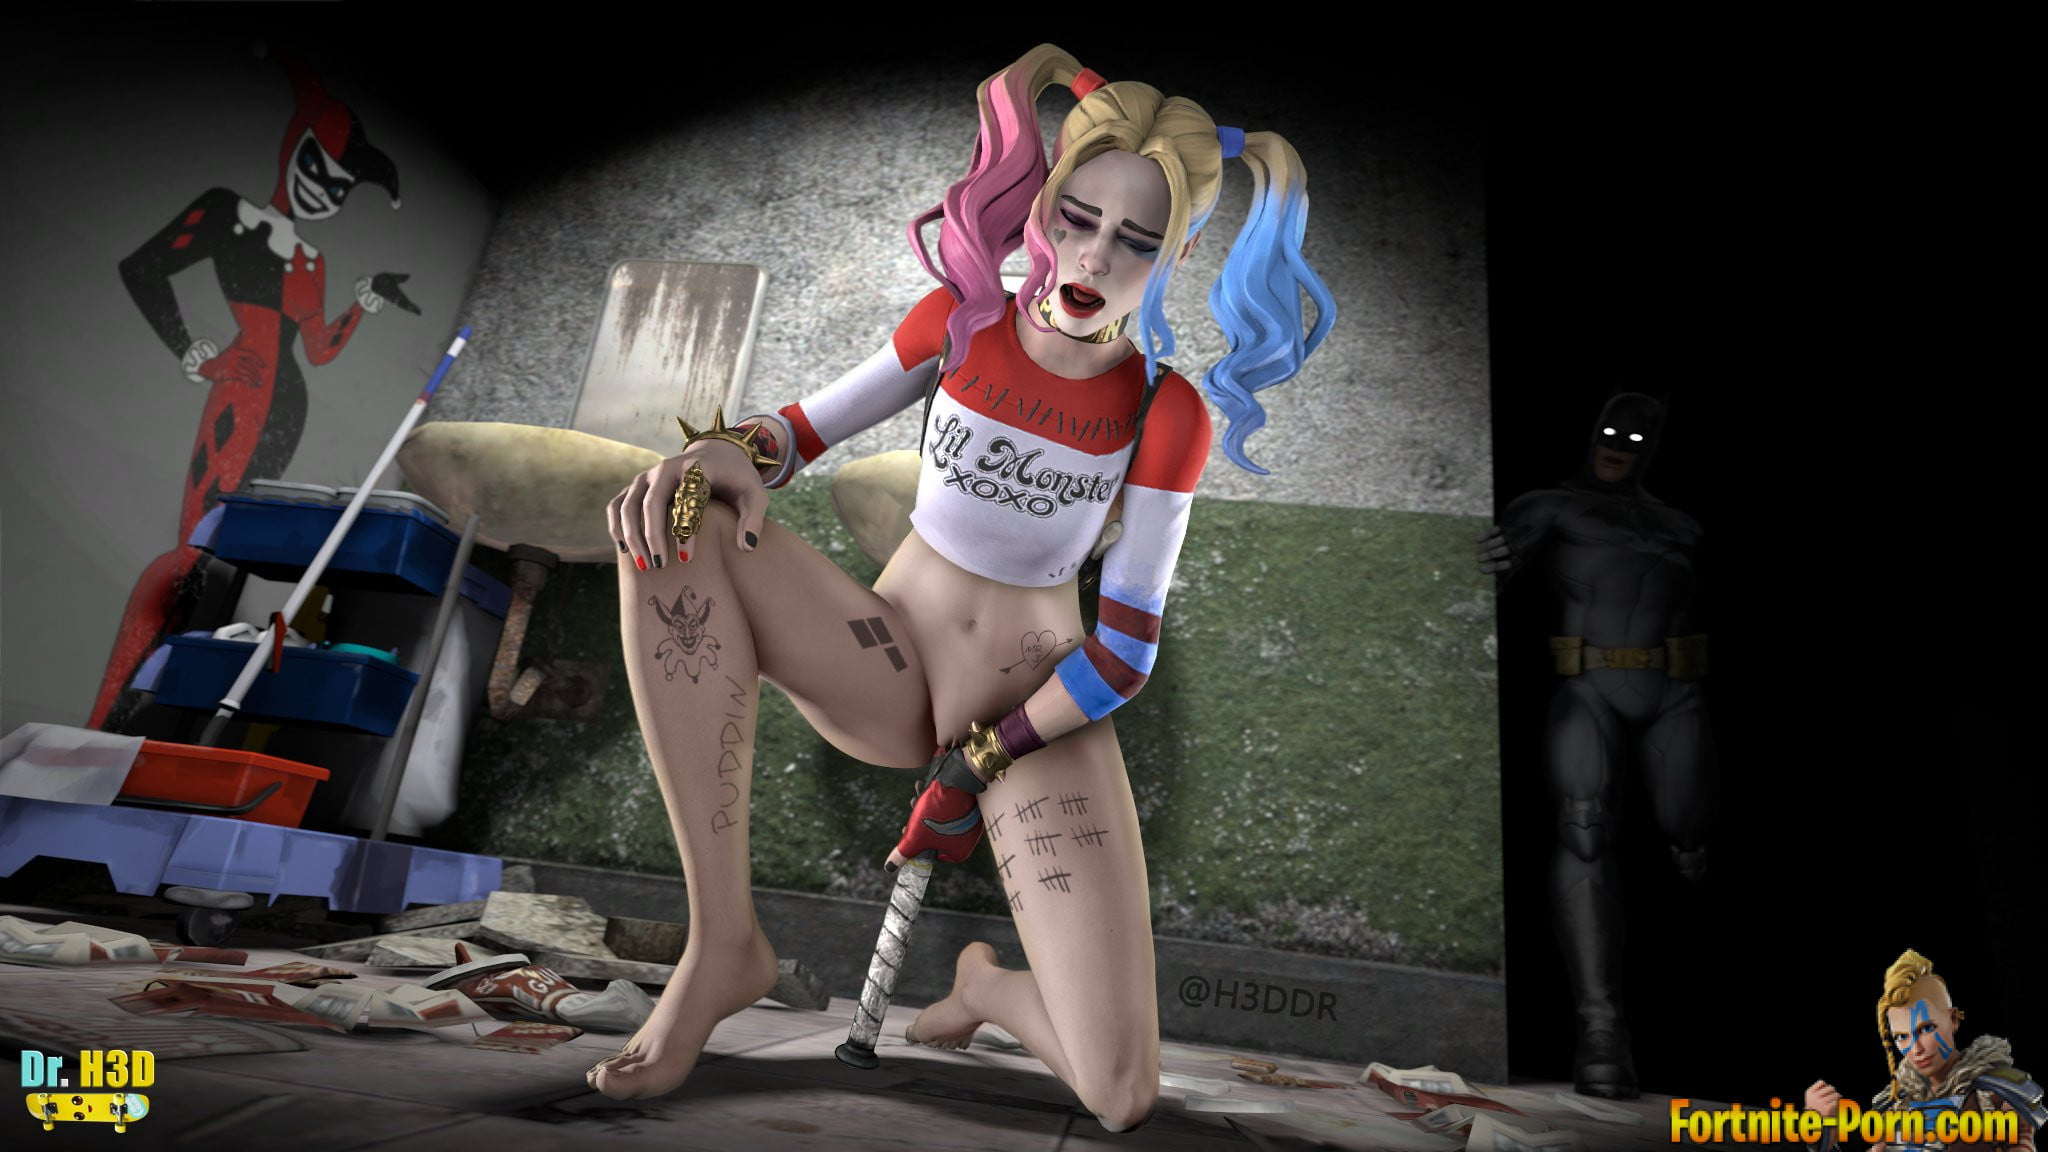 Shemale star harley quinn in a sexy solo strip tease on